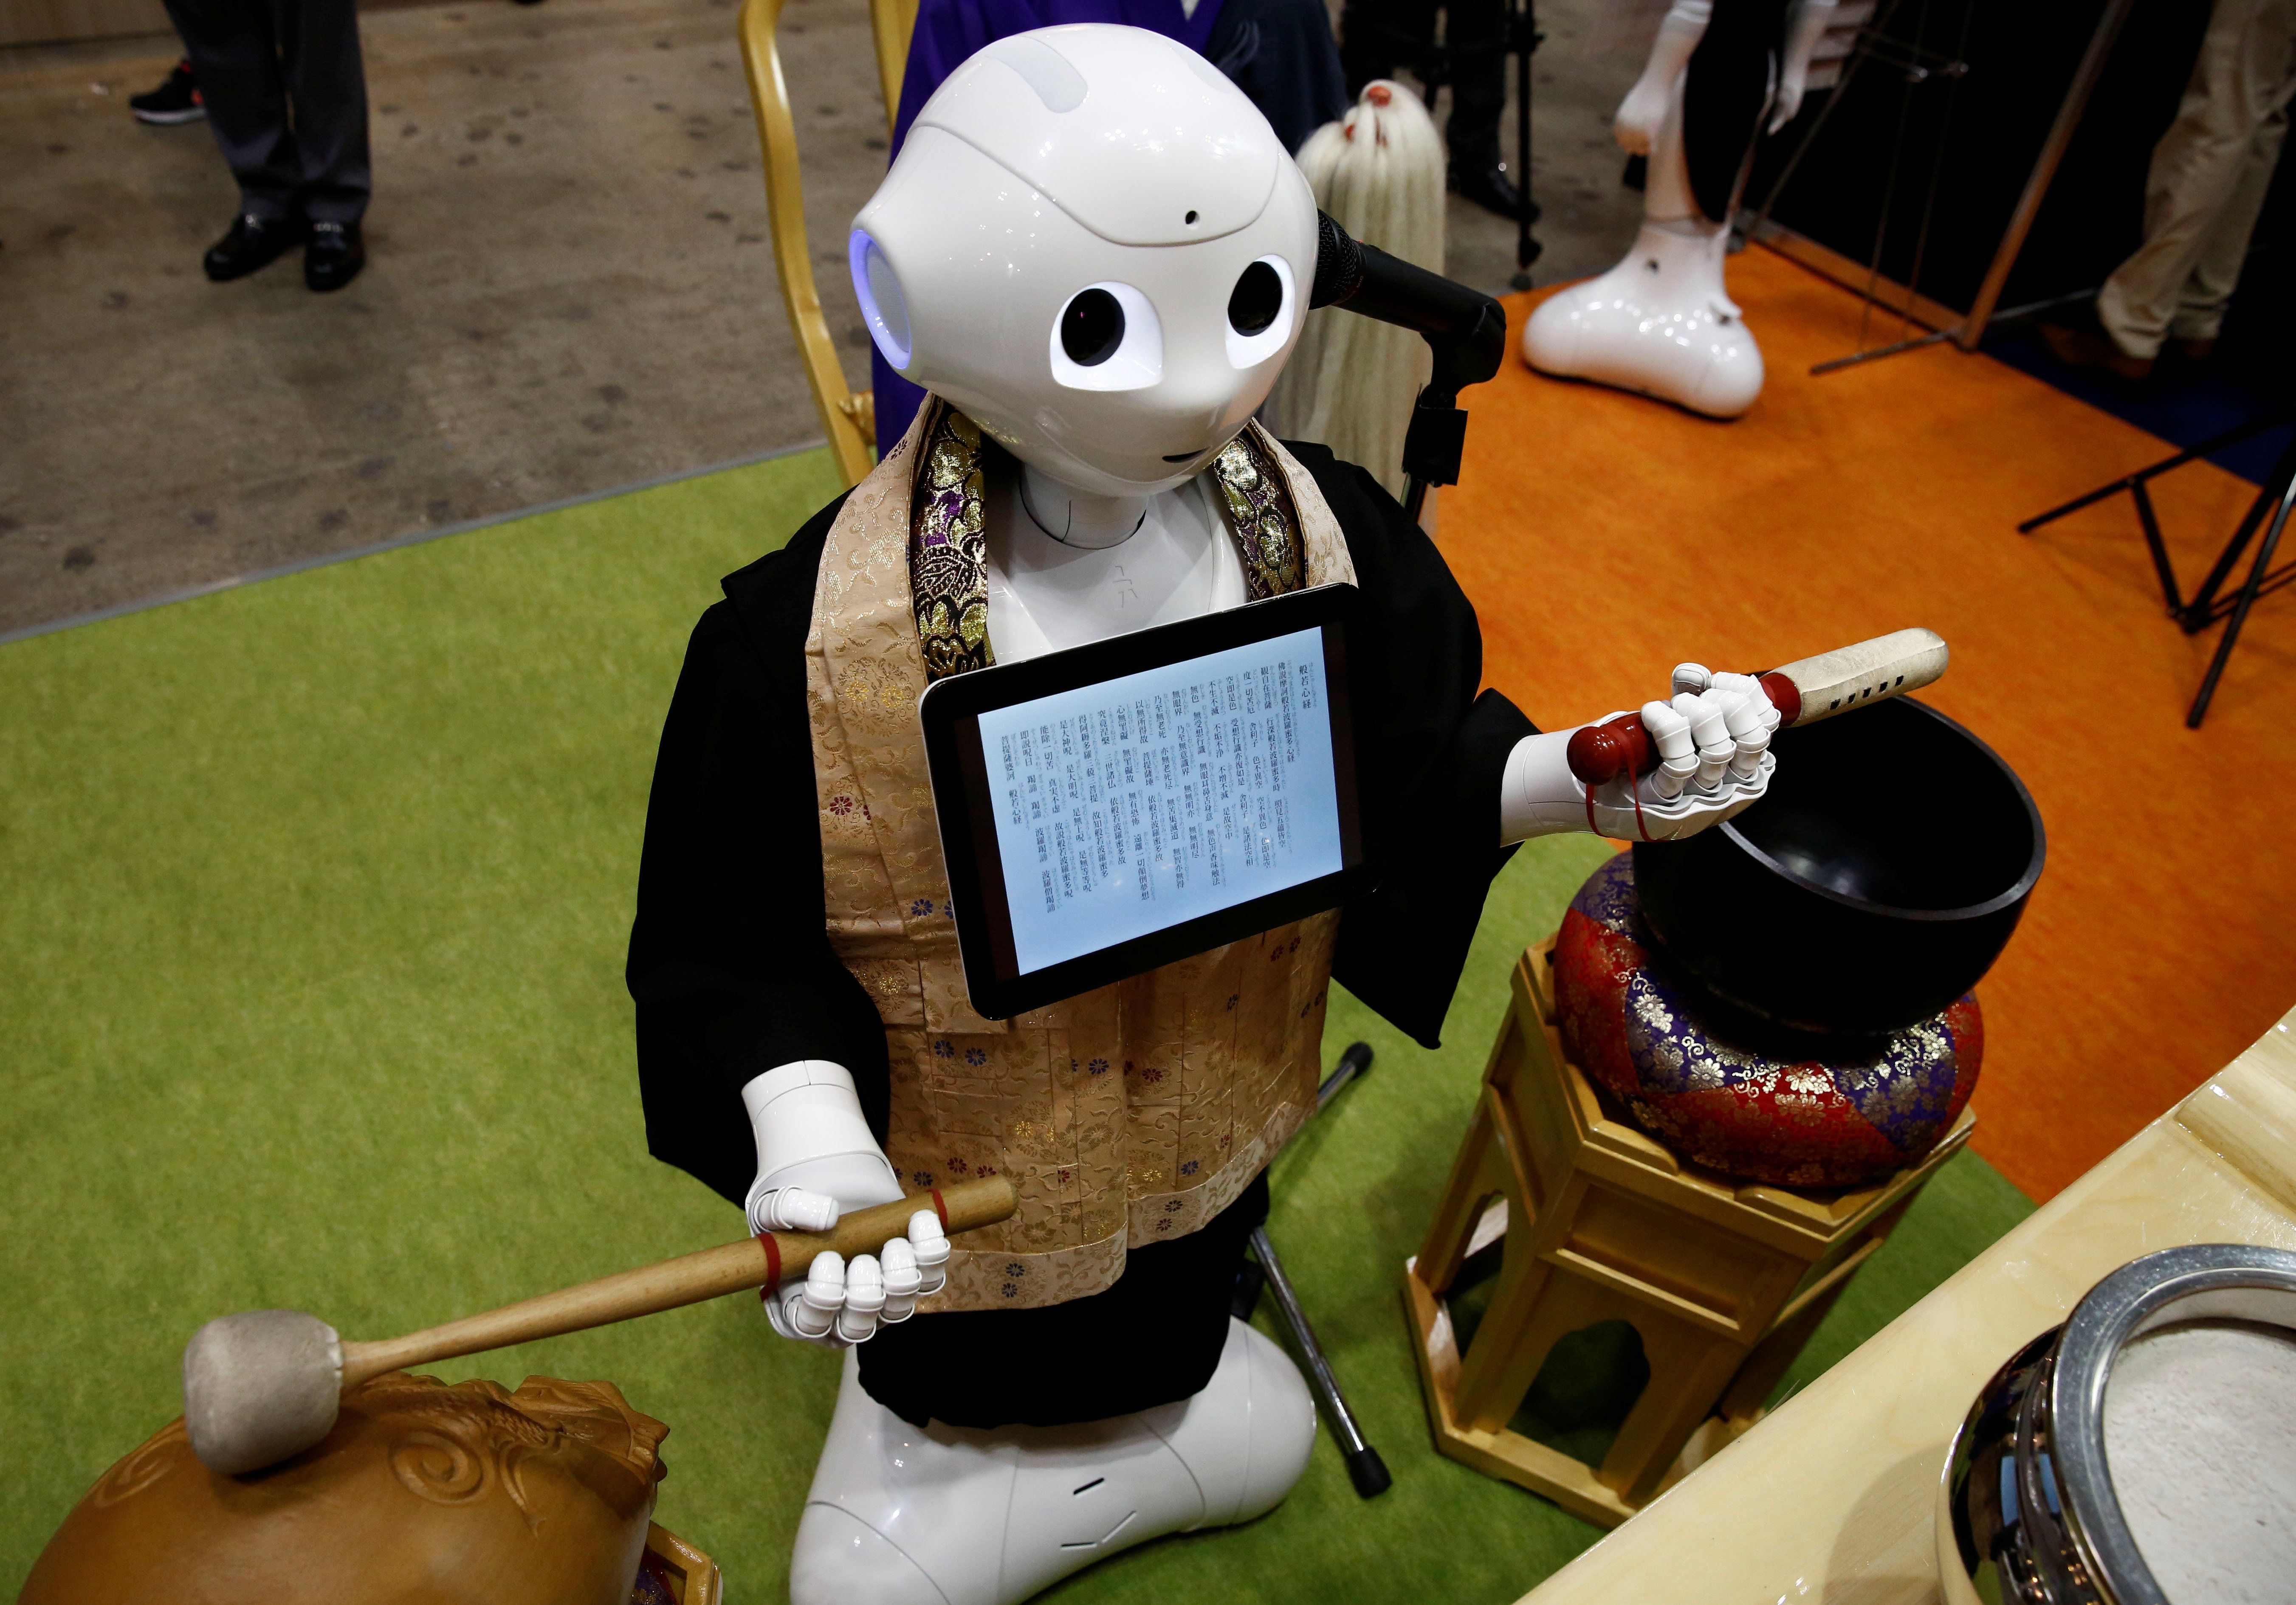 A 'robot priest' wearing a Buddhist robe chants sutras at it beats a wooden fish during its demonstration at Life Ending Industry EXPO 2017 in Tokyo, Japan August 23, 2017. REUTERS/Kim Kyung-Hoon